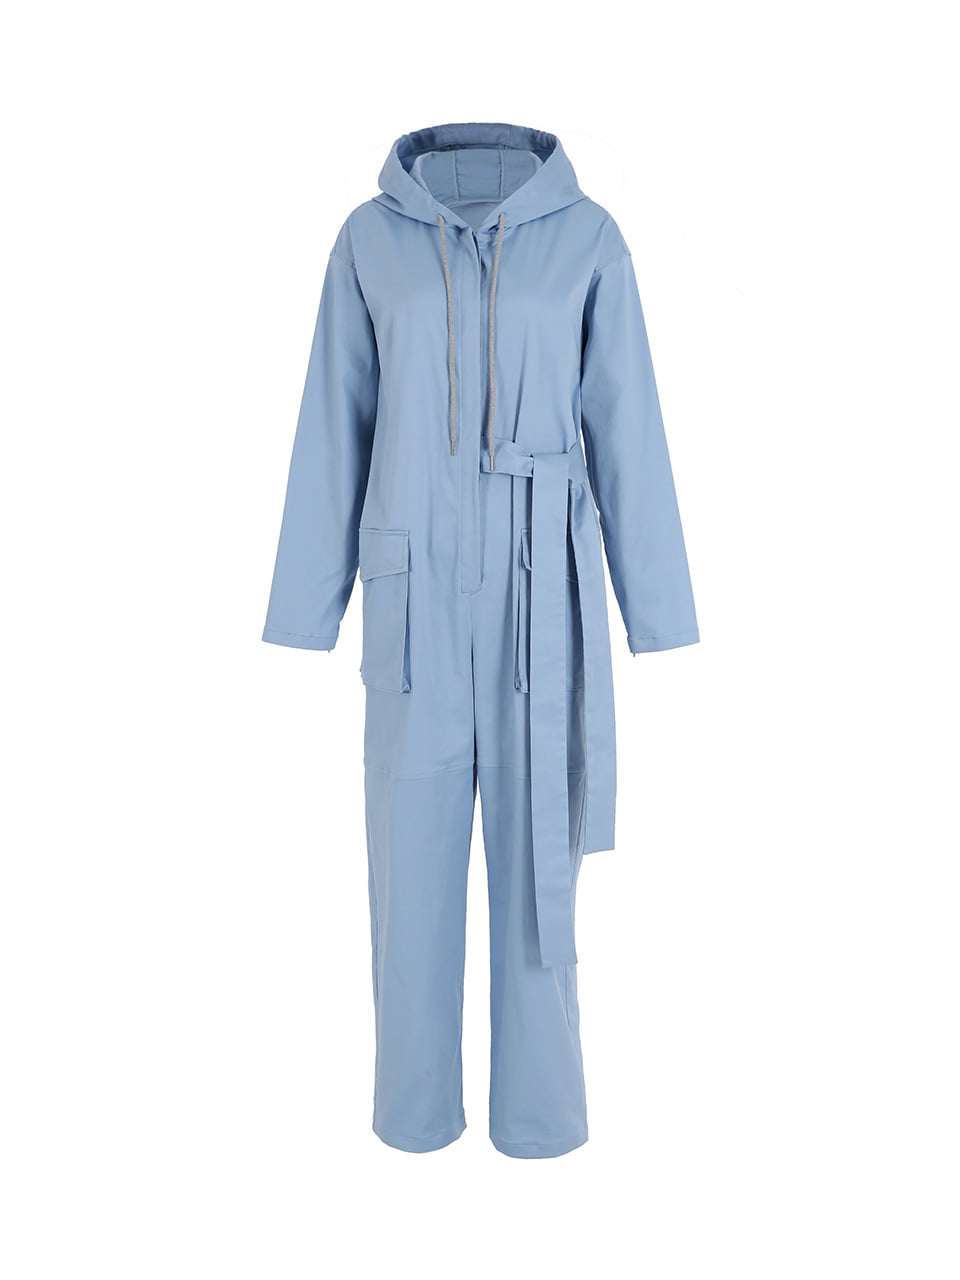 GUKAHooded jumpsuit -Blue